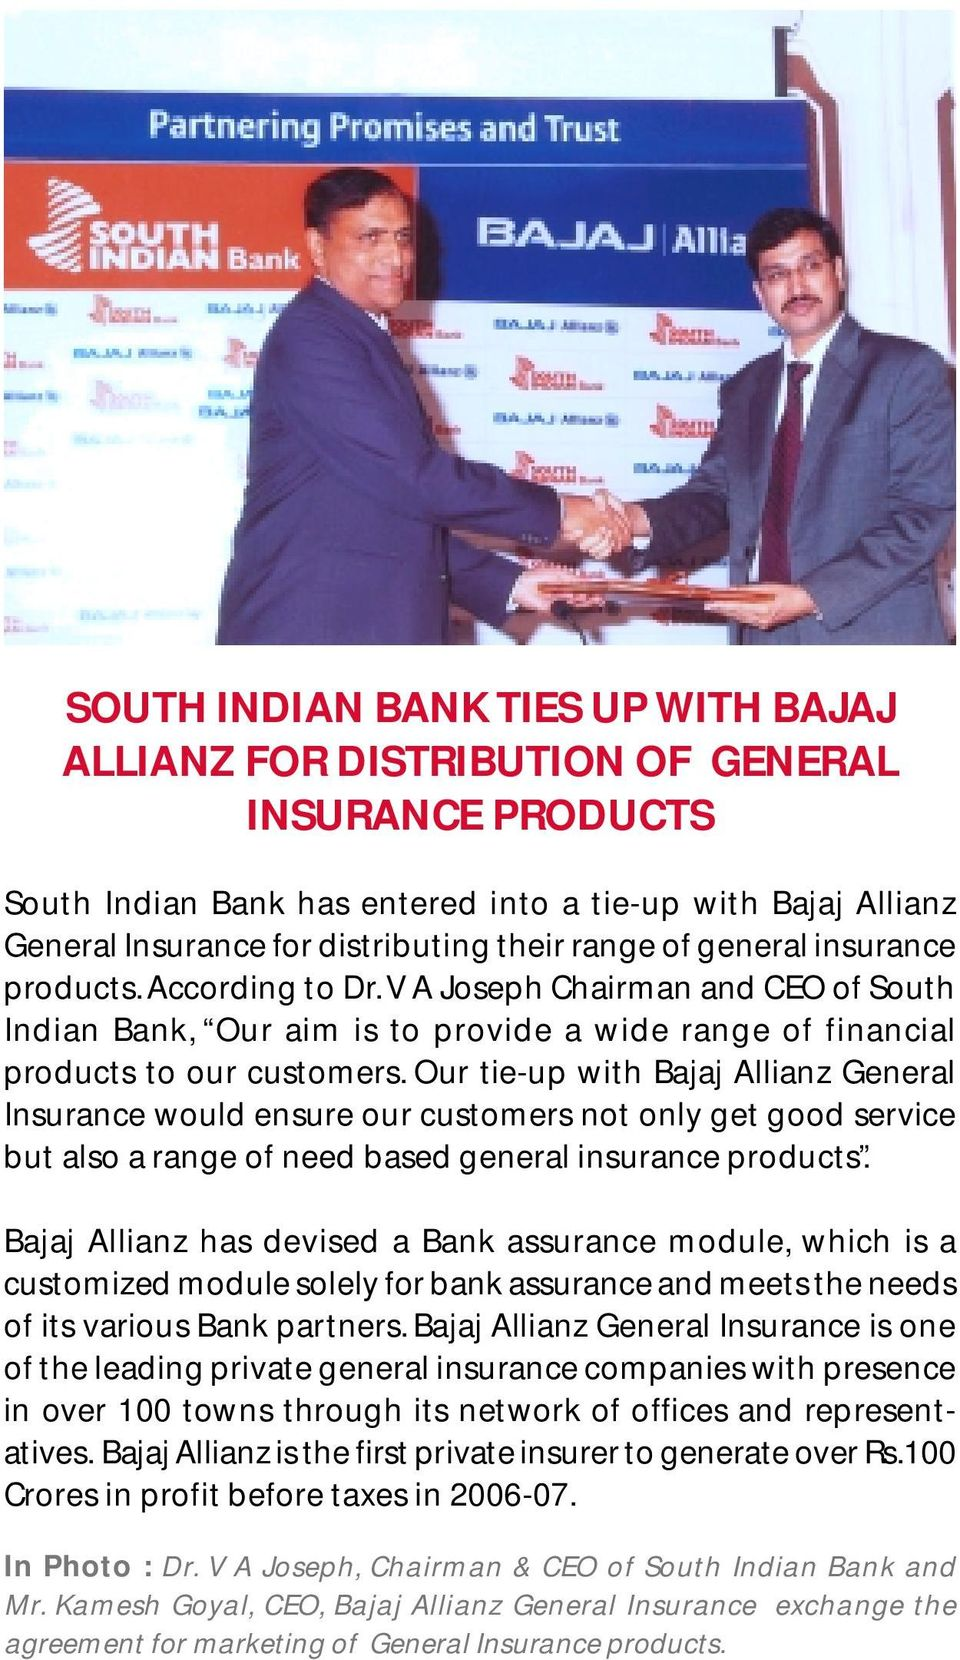 Our tie-up with Bajaj Allianz General Insurance would ensure our customers not only get good service but also a range of need based general insurance products.